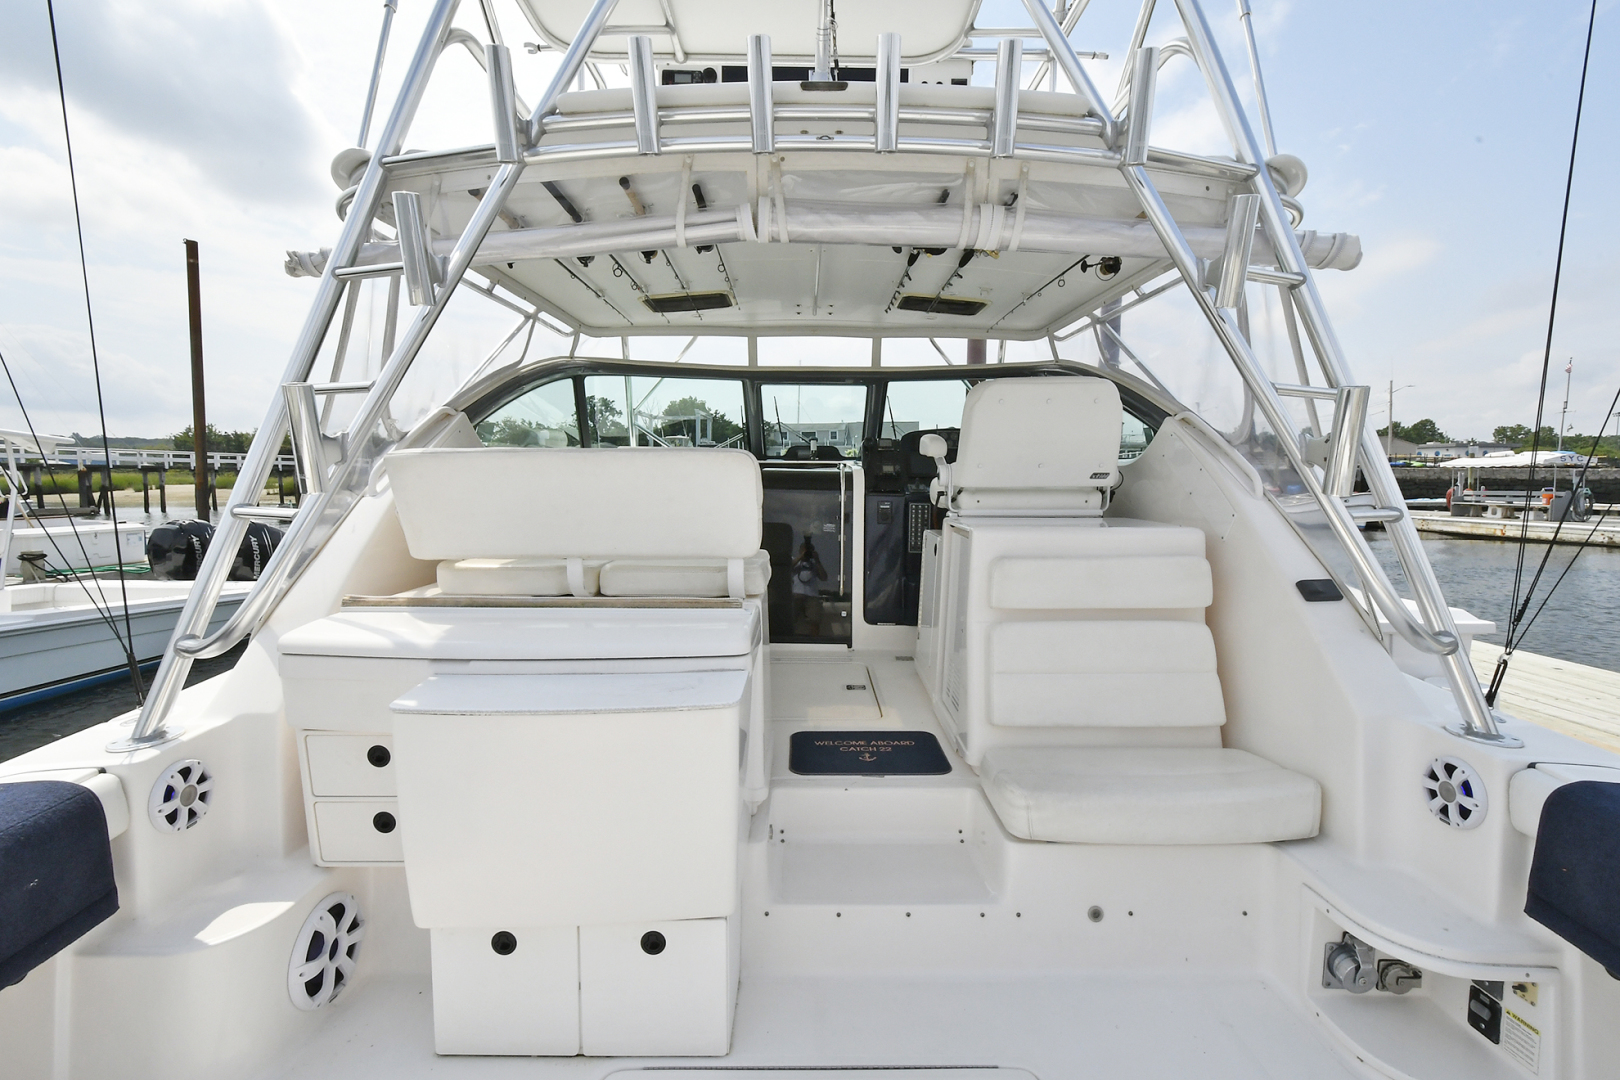 Tiara-3800 Open 2003-Catch 22 Oyster Bay-New York-United States-Cockpit-1224910 | Thumbnail